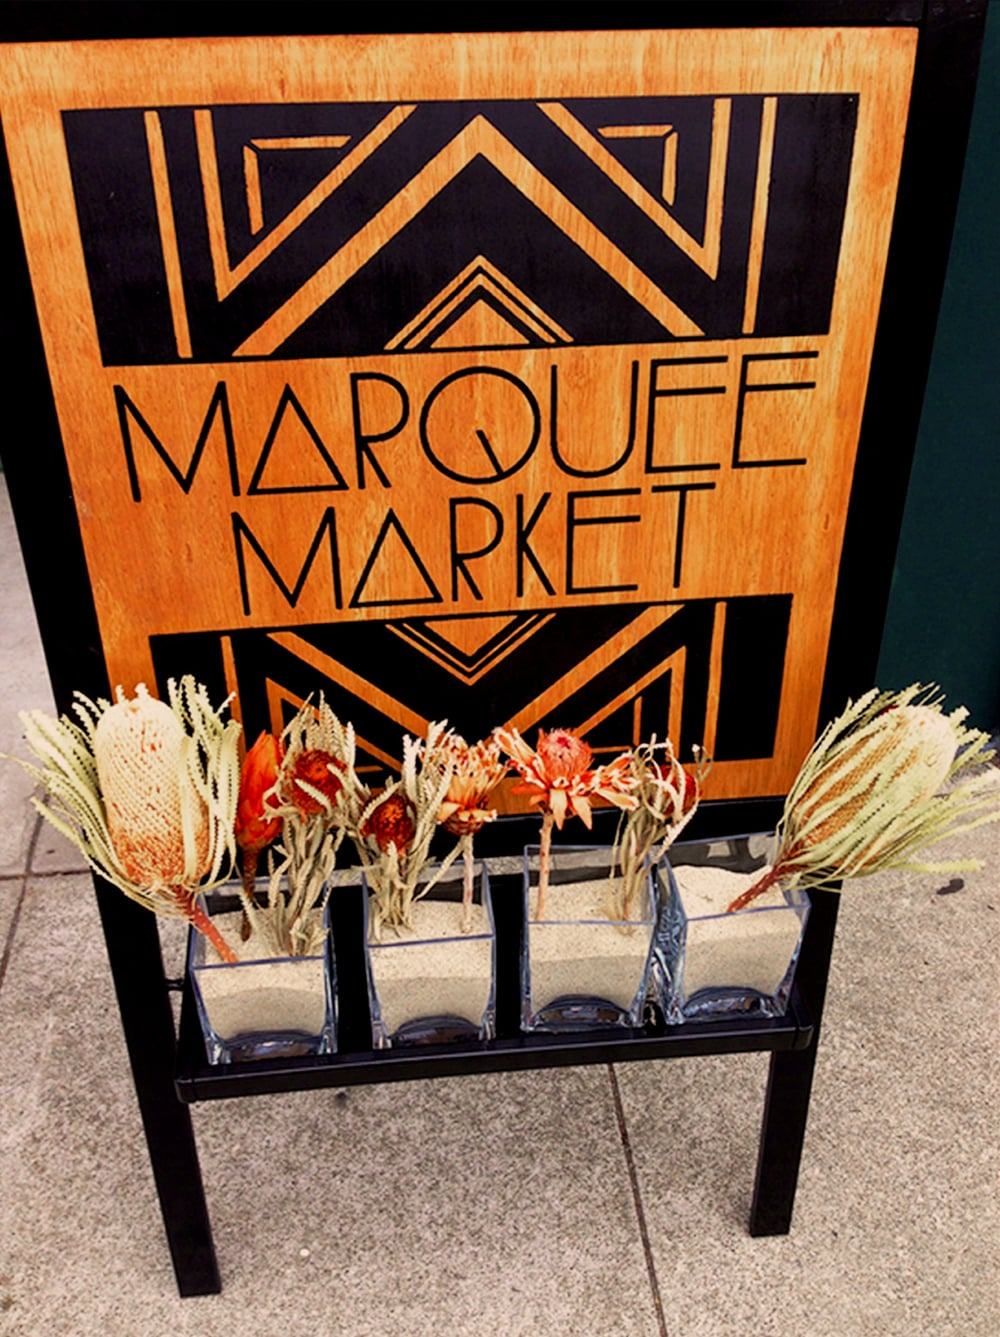 STARCADE DESIGNS & PRINT PRODUCTION FOR MARQUEE SALON / SCREEN-PRINTED DOUBLE-SIDED SIGNAGE FOR MARQUEE MARKET